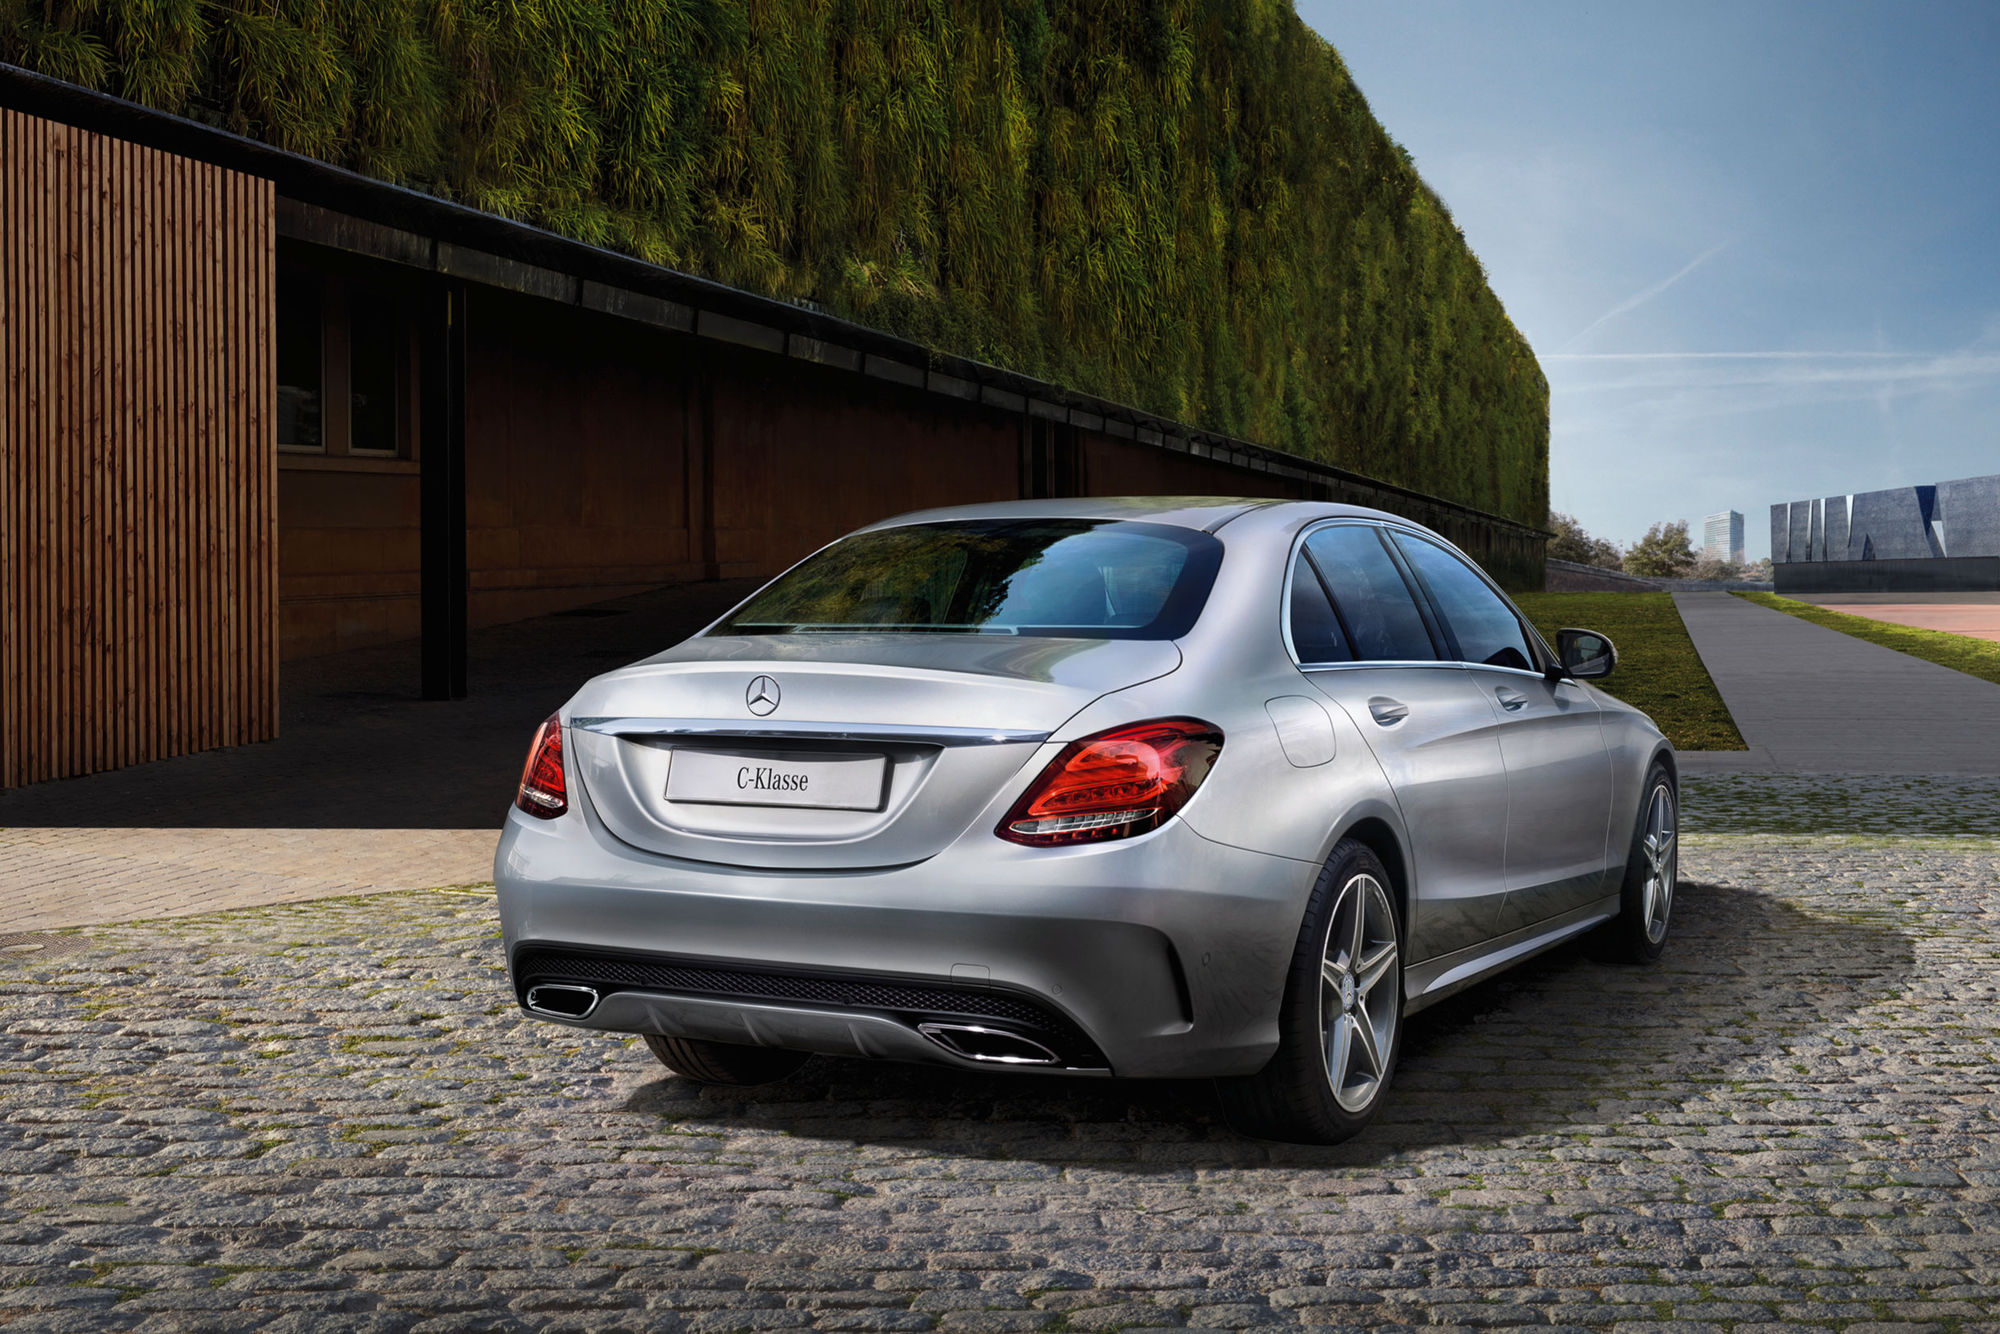 JAN FRIESE for MERCEDES BENZ